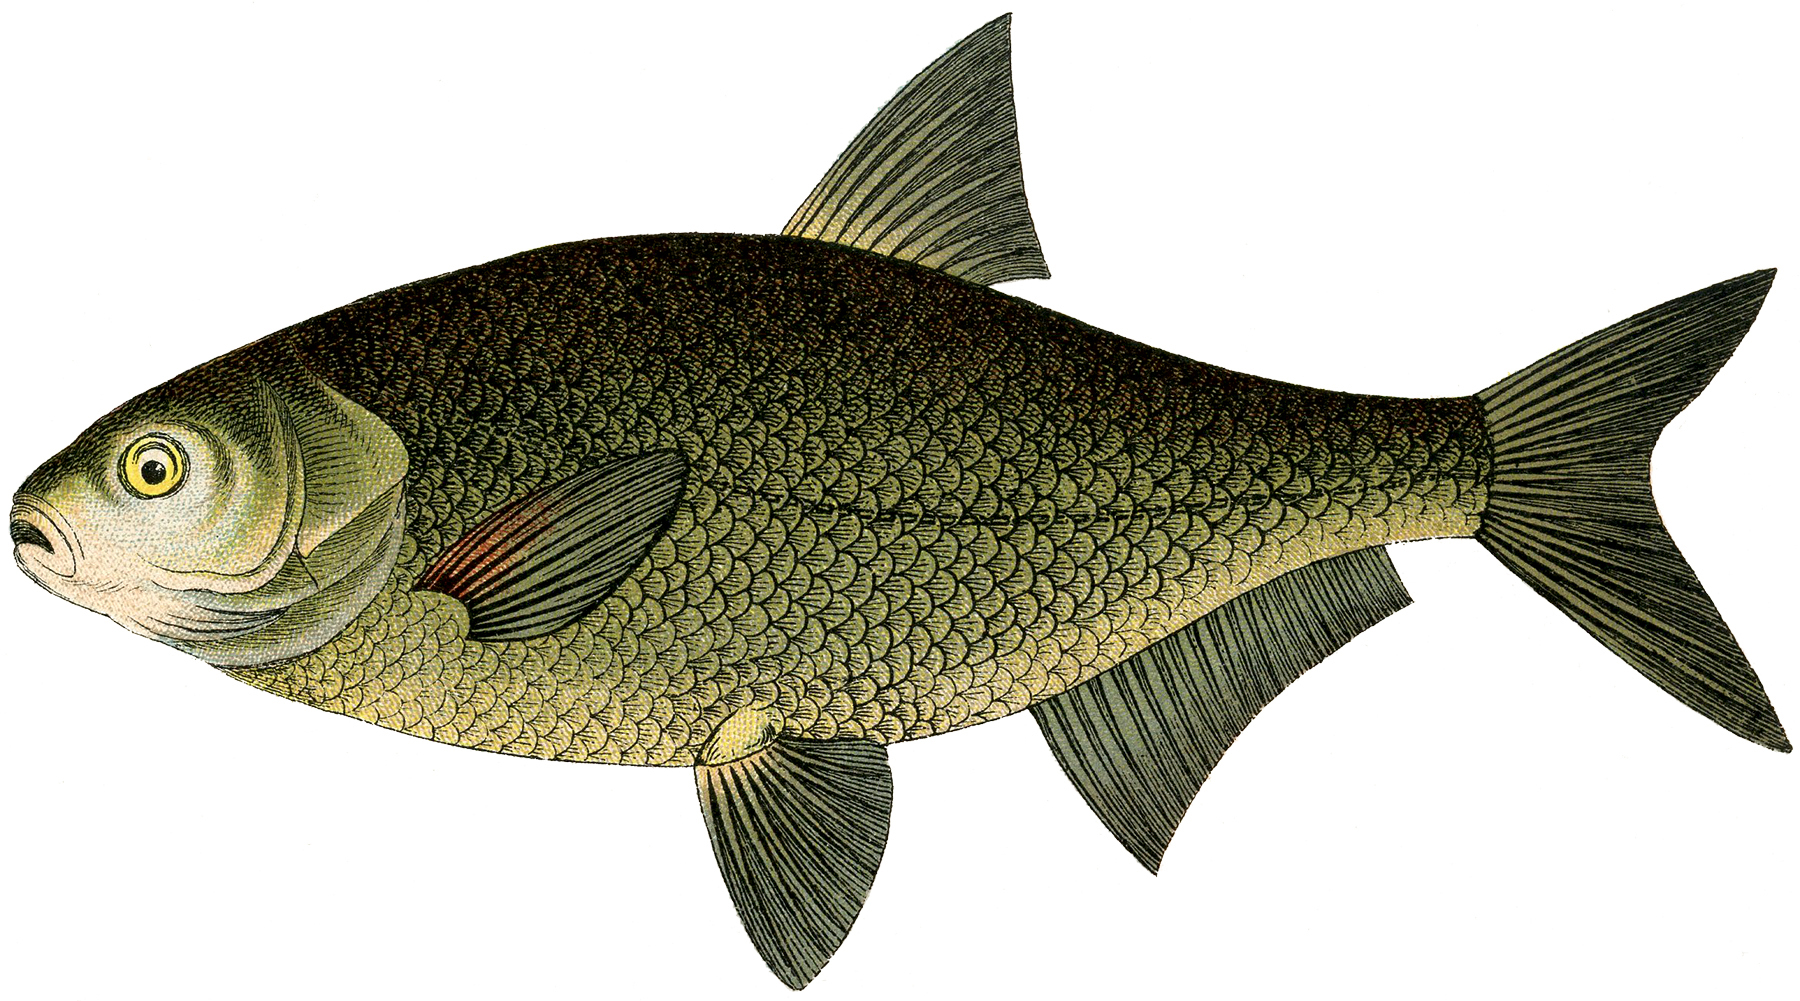 Natural History Fish Image! - The Graphics Fairy